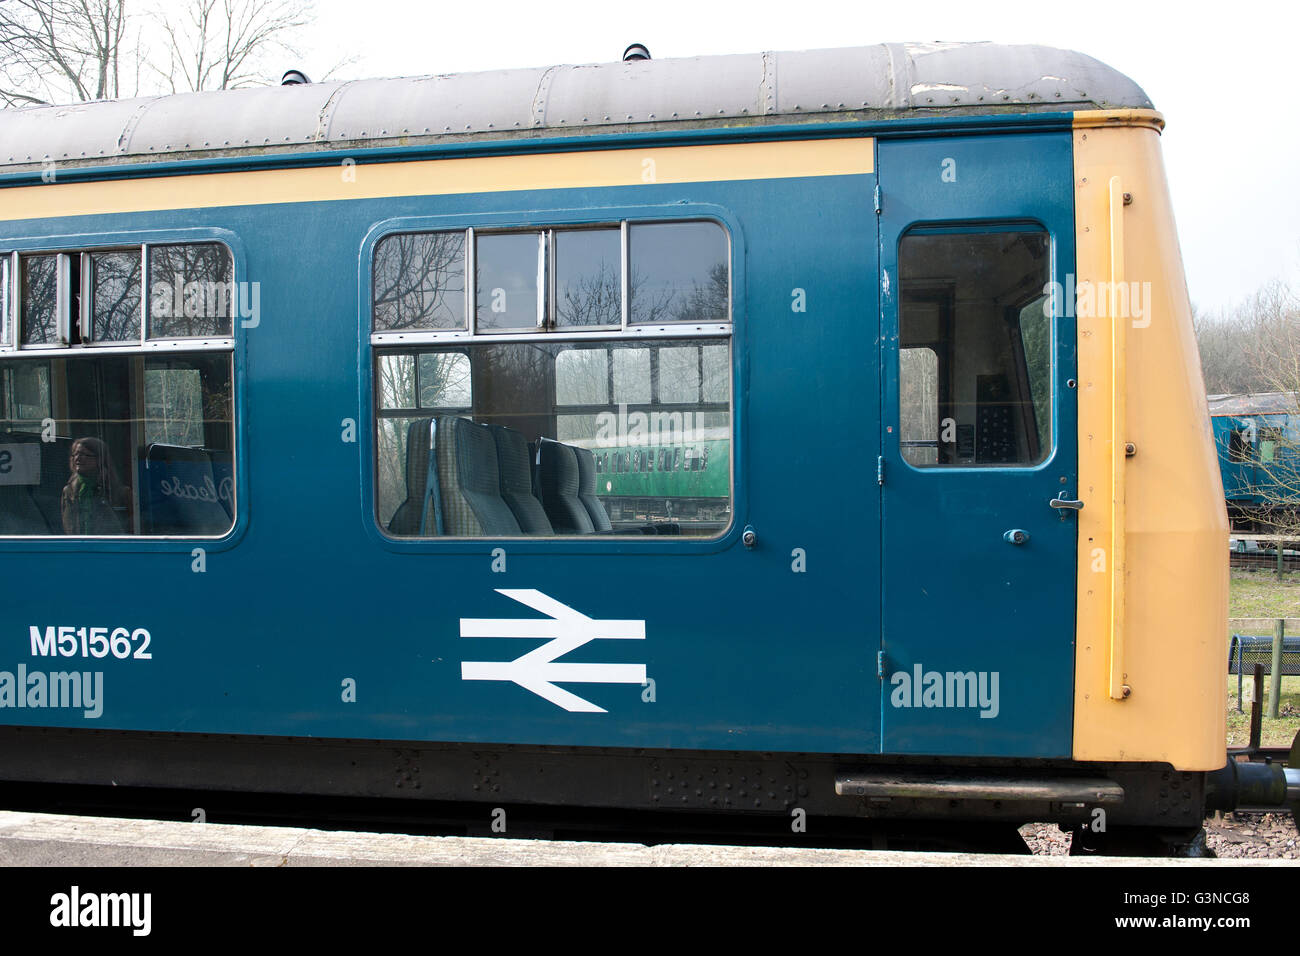 Class 108 DMU  on the East Kent Railway, Kent UK - Stock Image